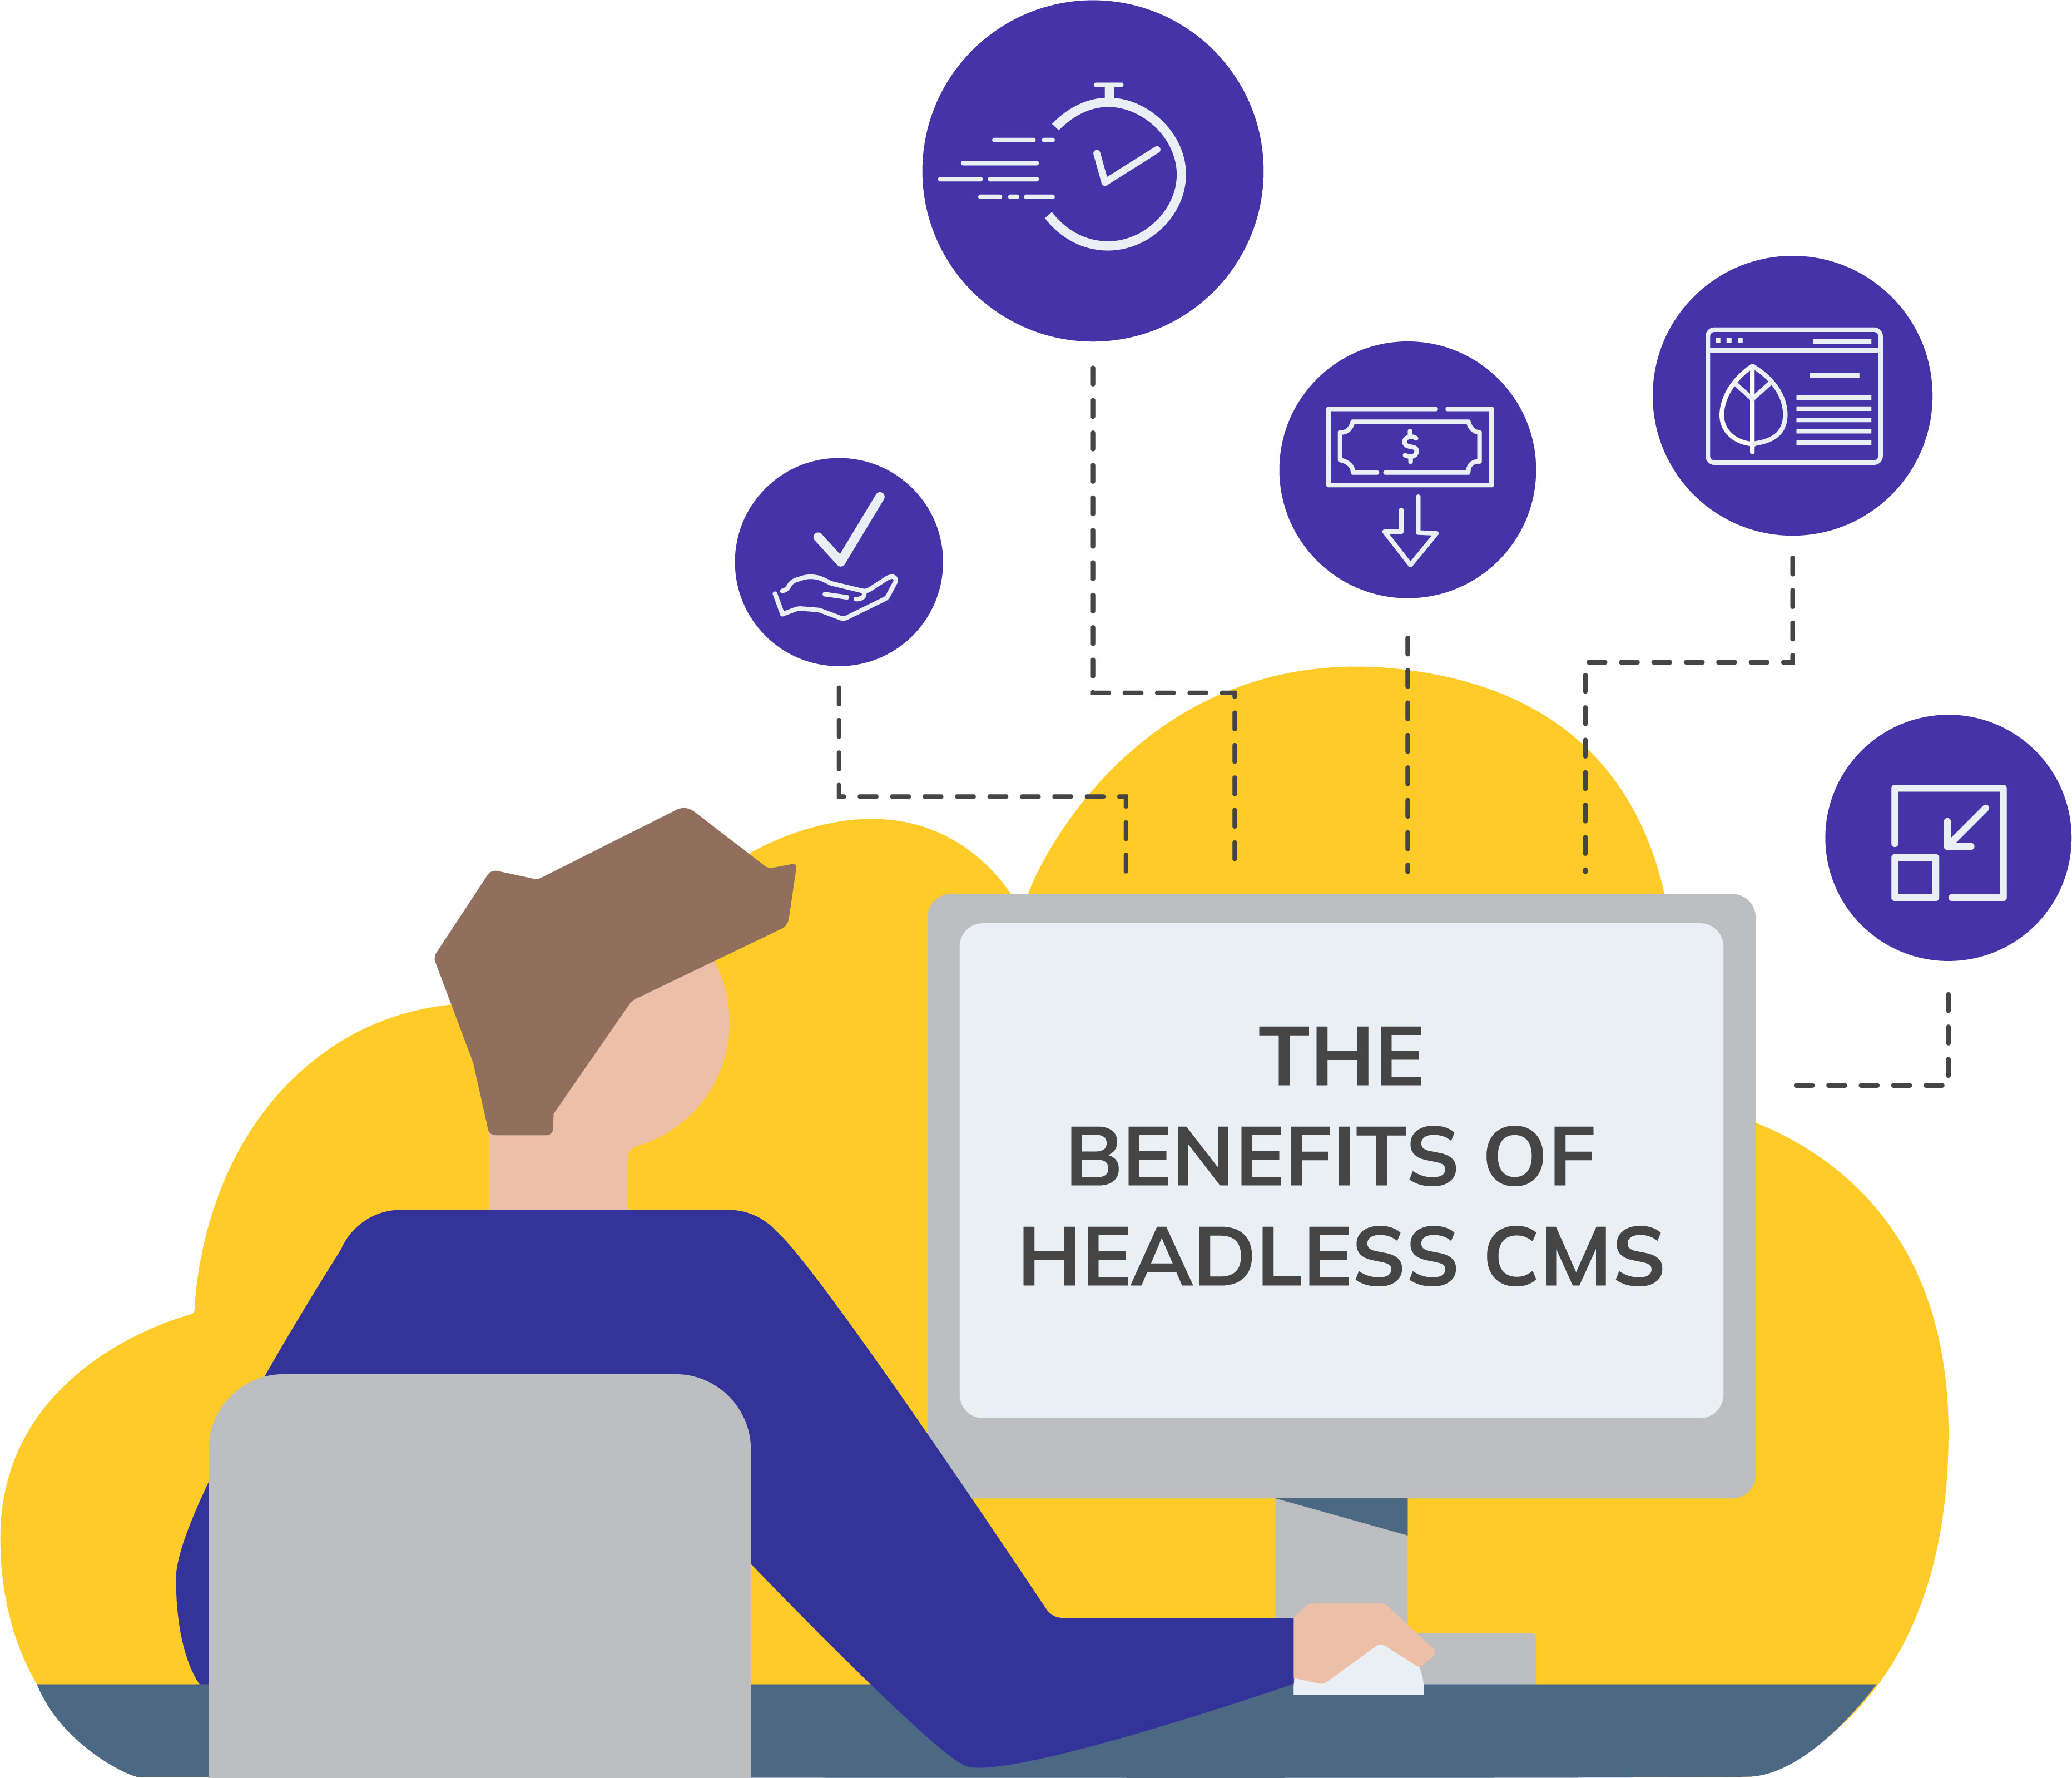 The benefits of a headless CMS